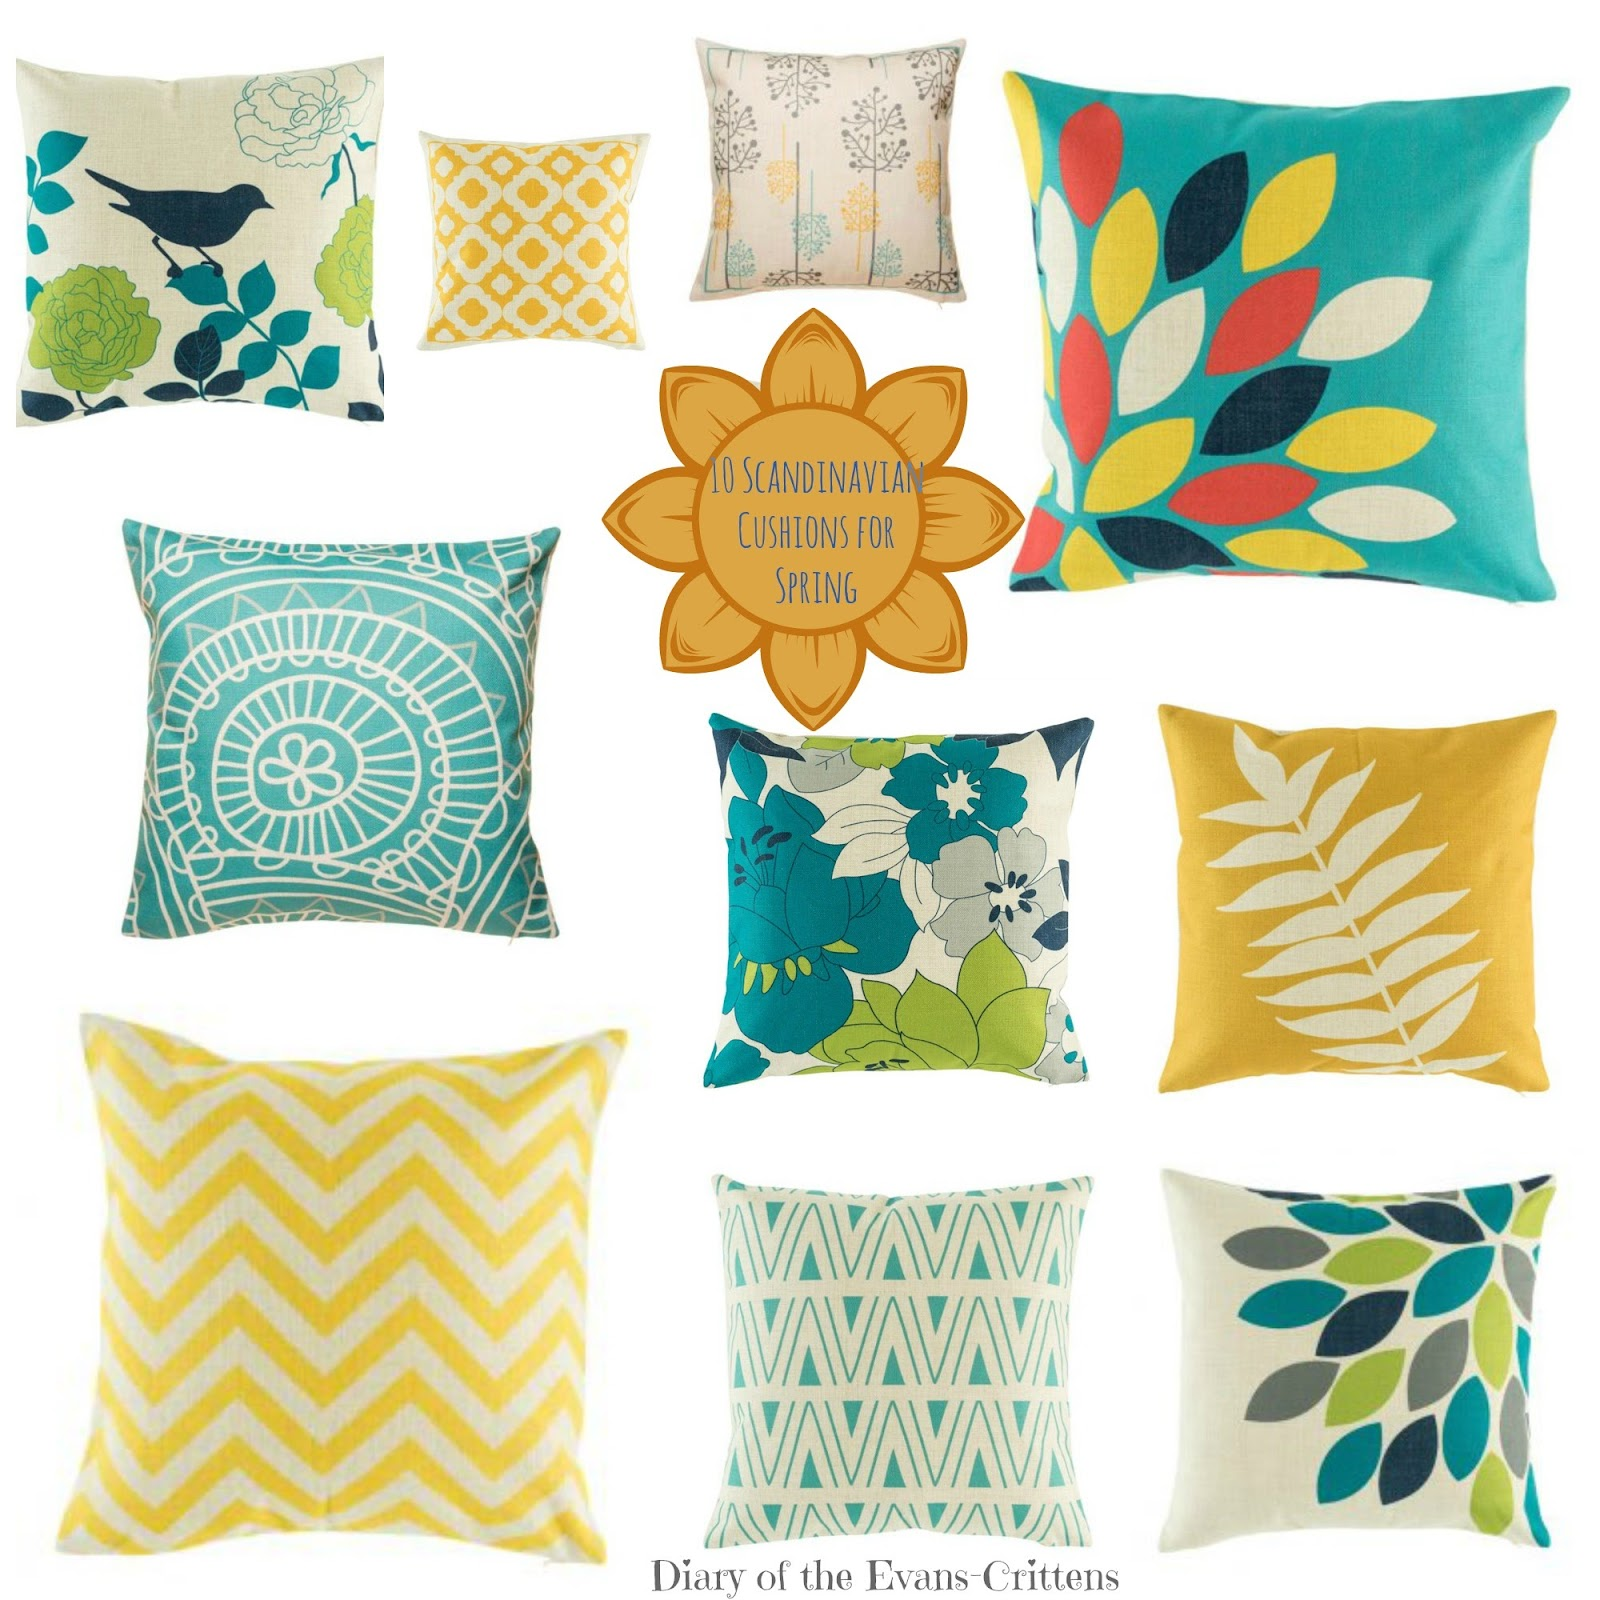 , Home Style:  10 Scandinavian Style Cushions for Spring